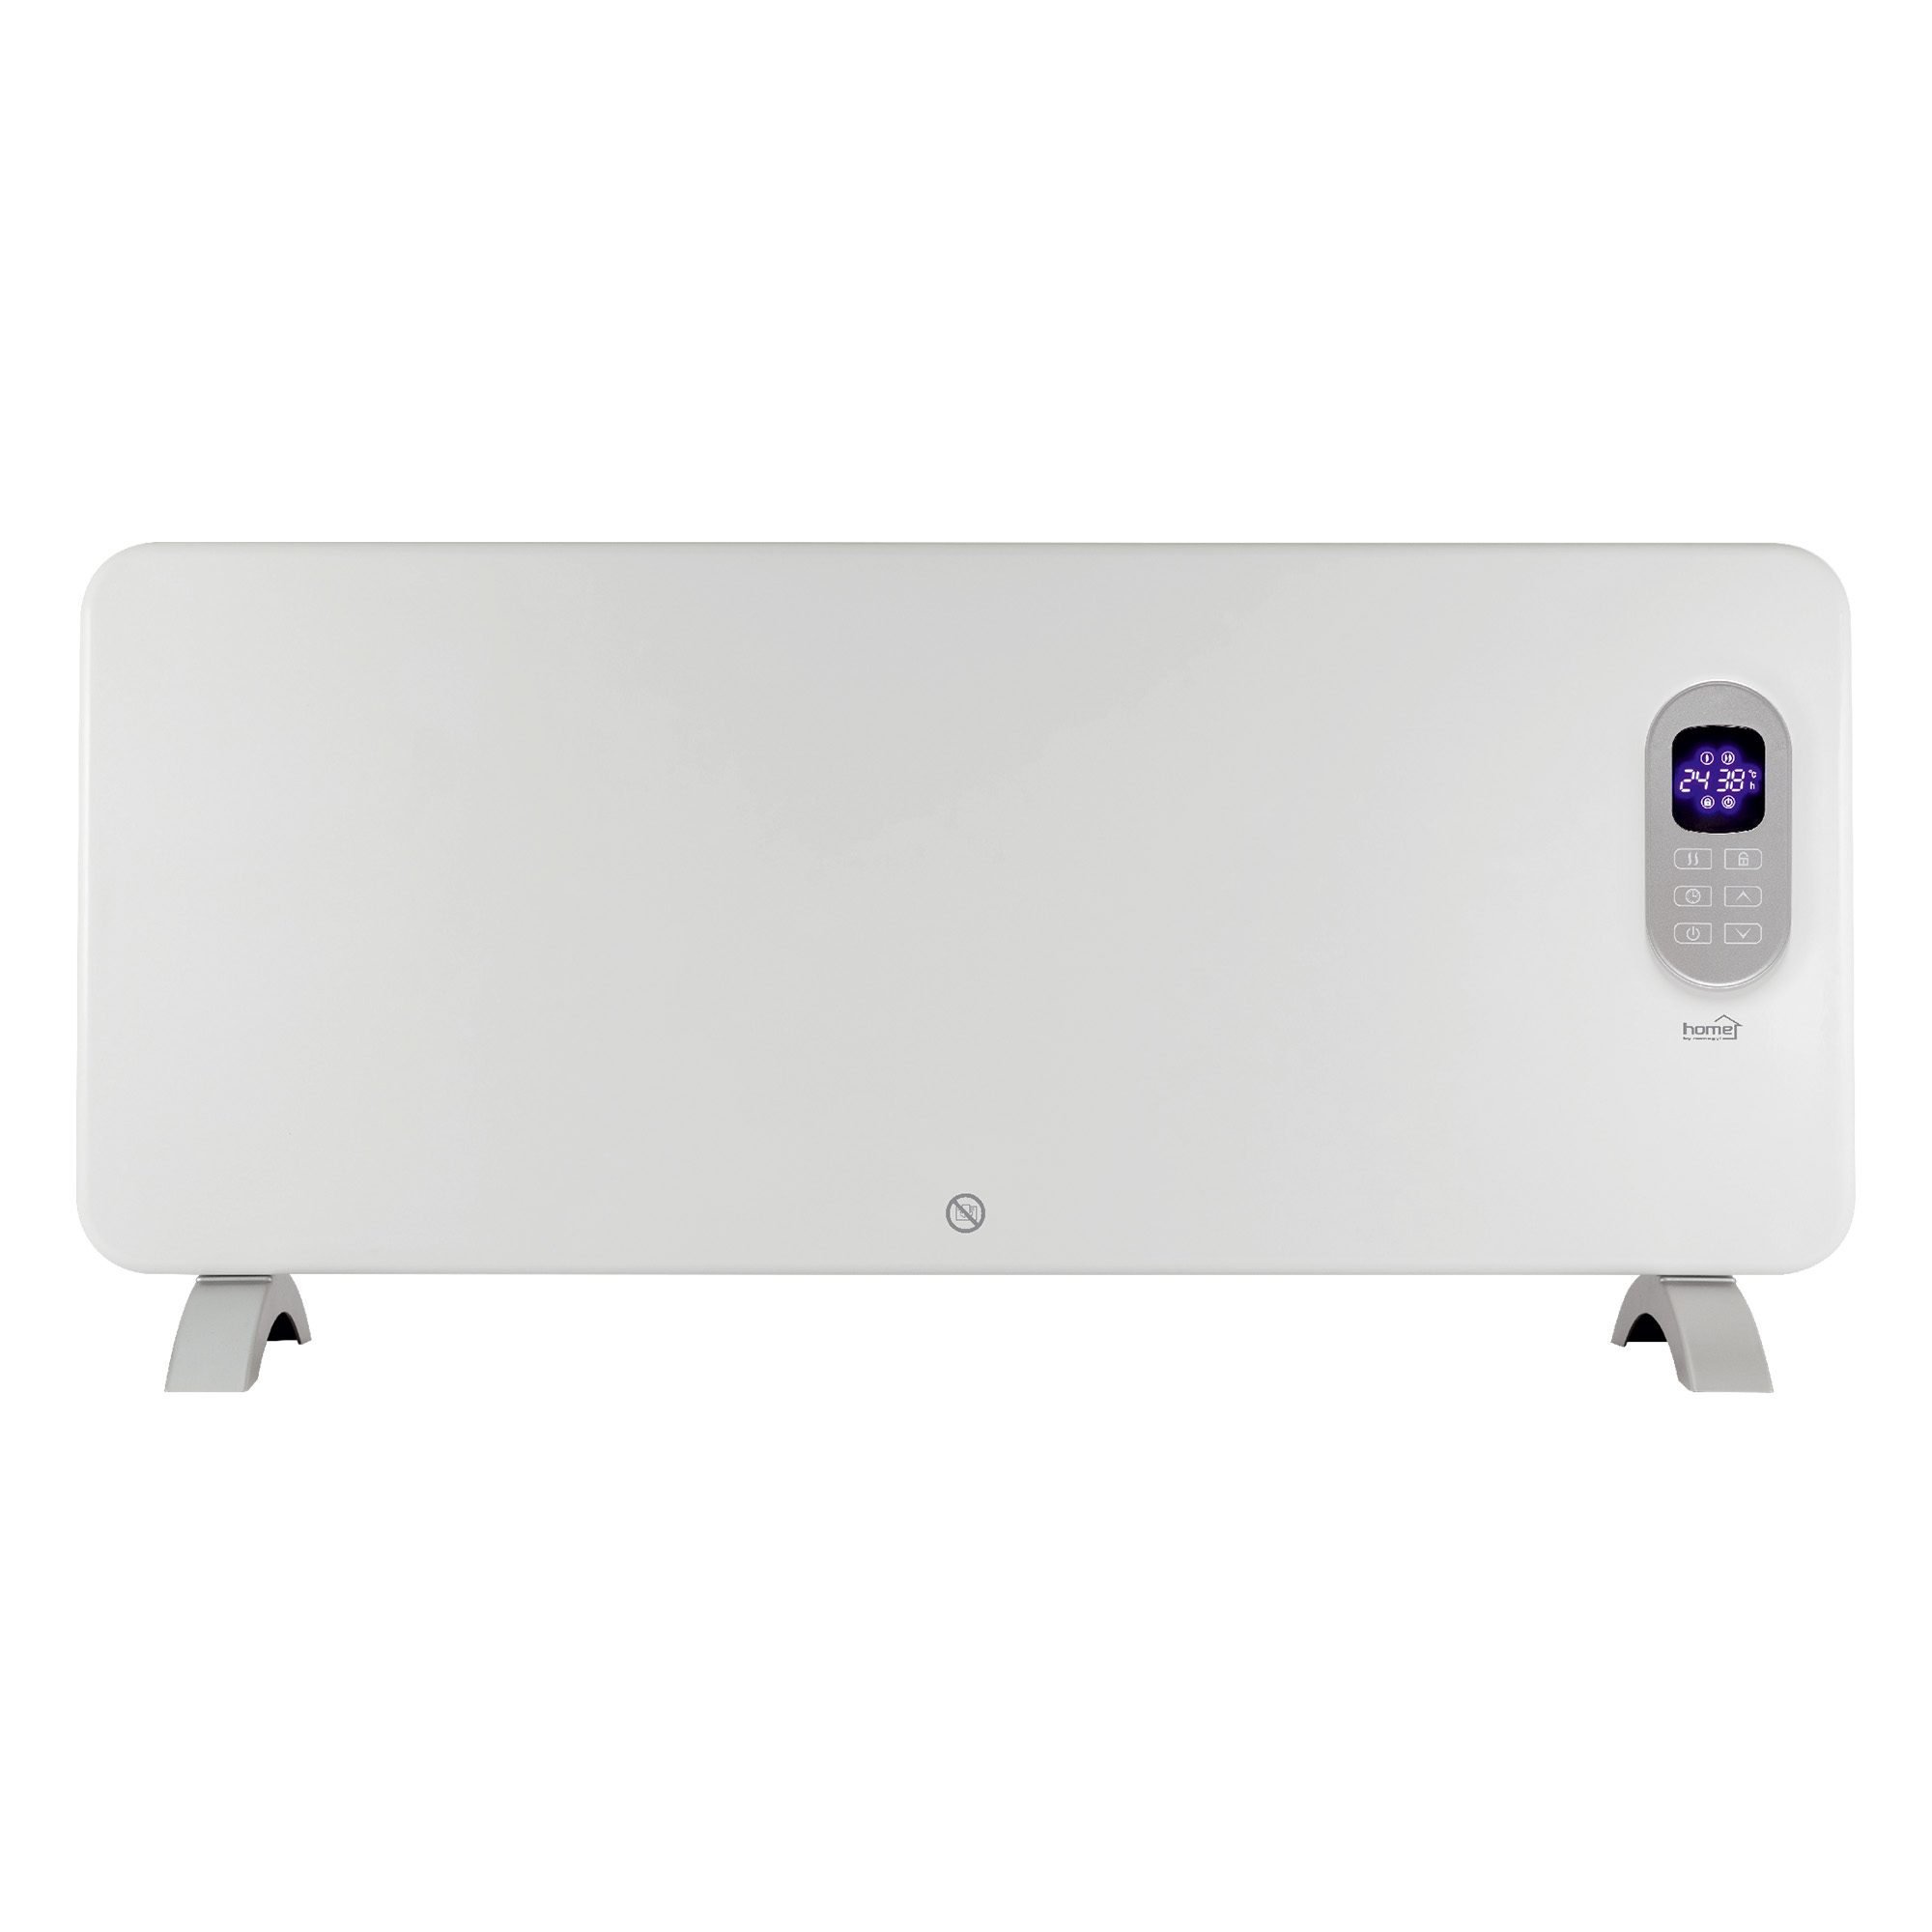 Convector electric smart Home by Somogyi FK 420, Wifi, 2000W, sticla, 92 x 43 x 24 cm